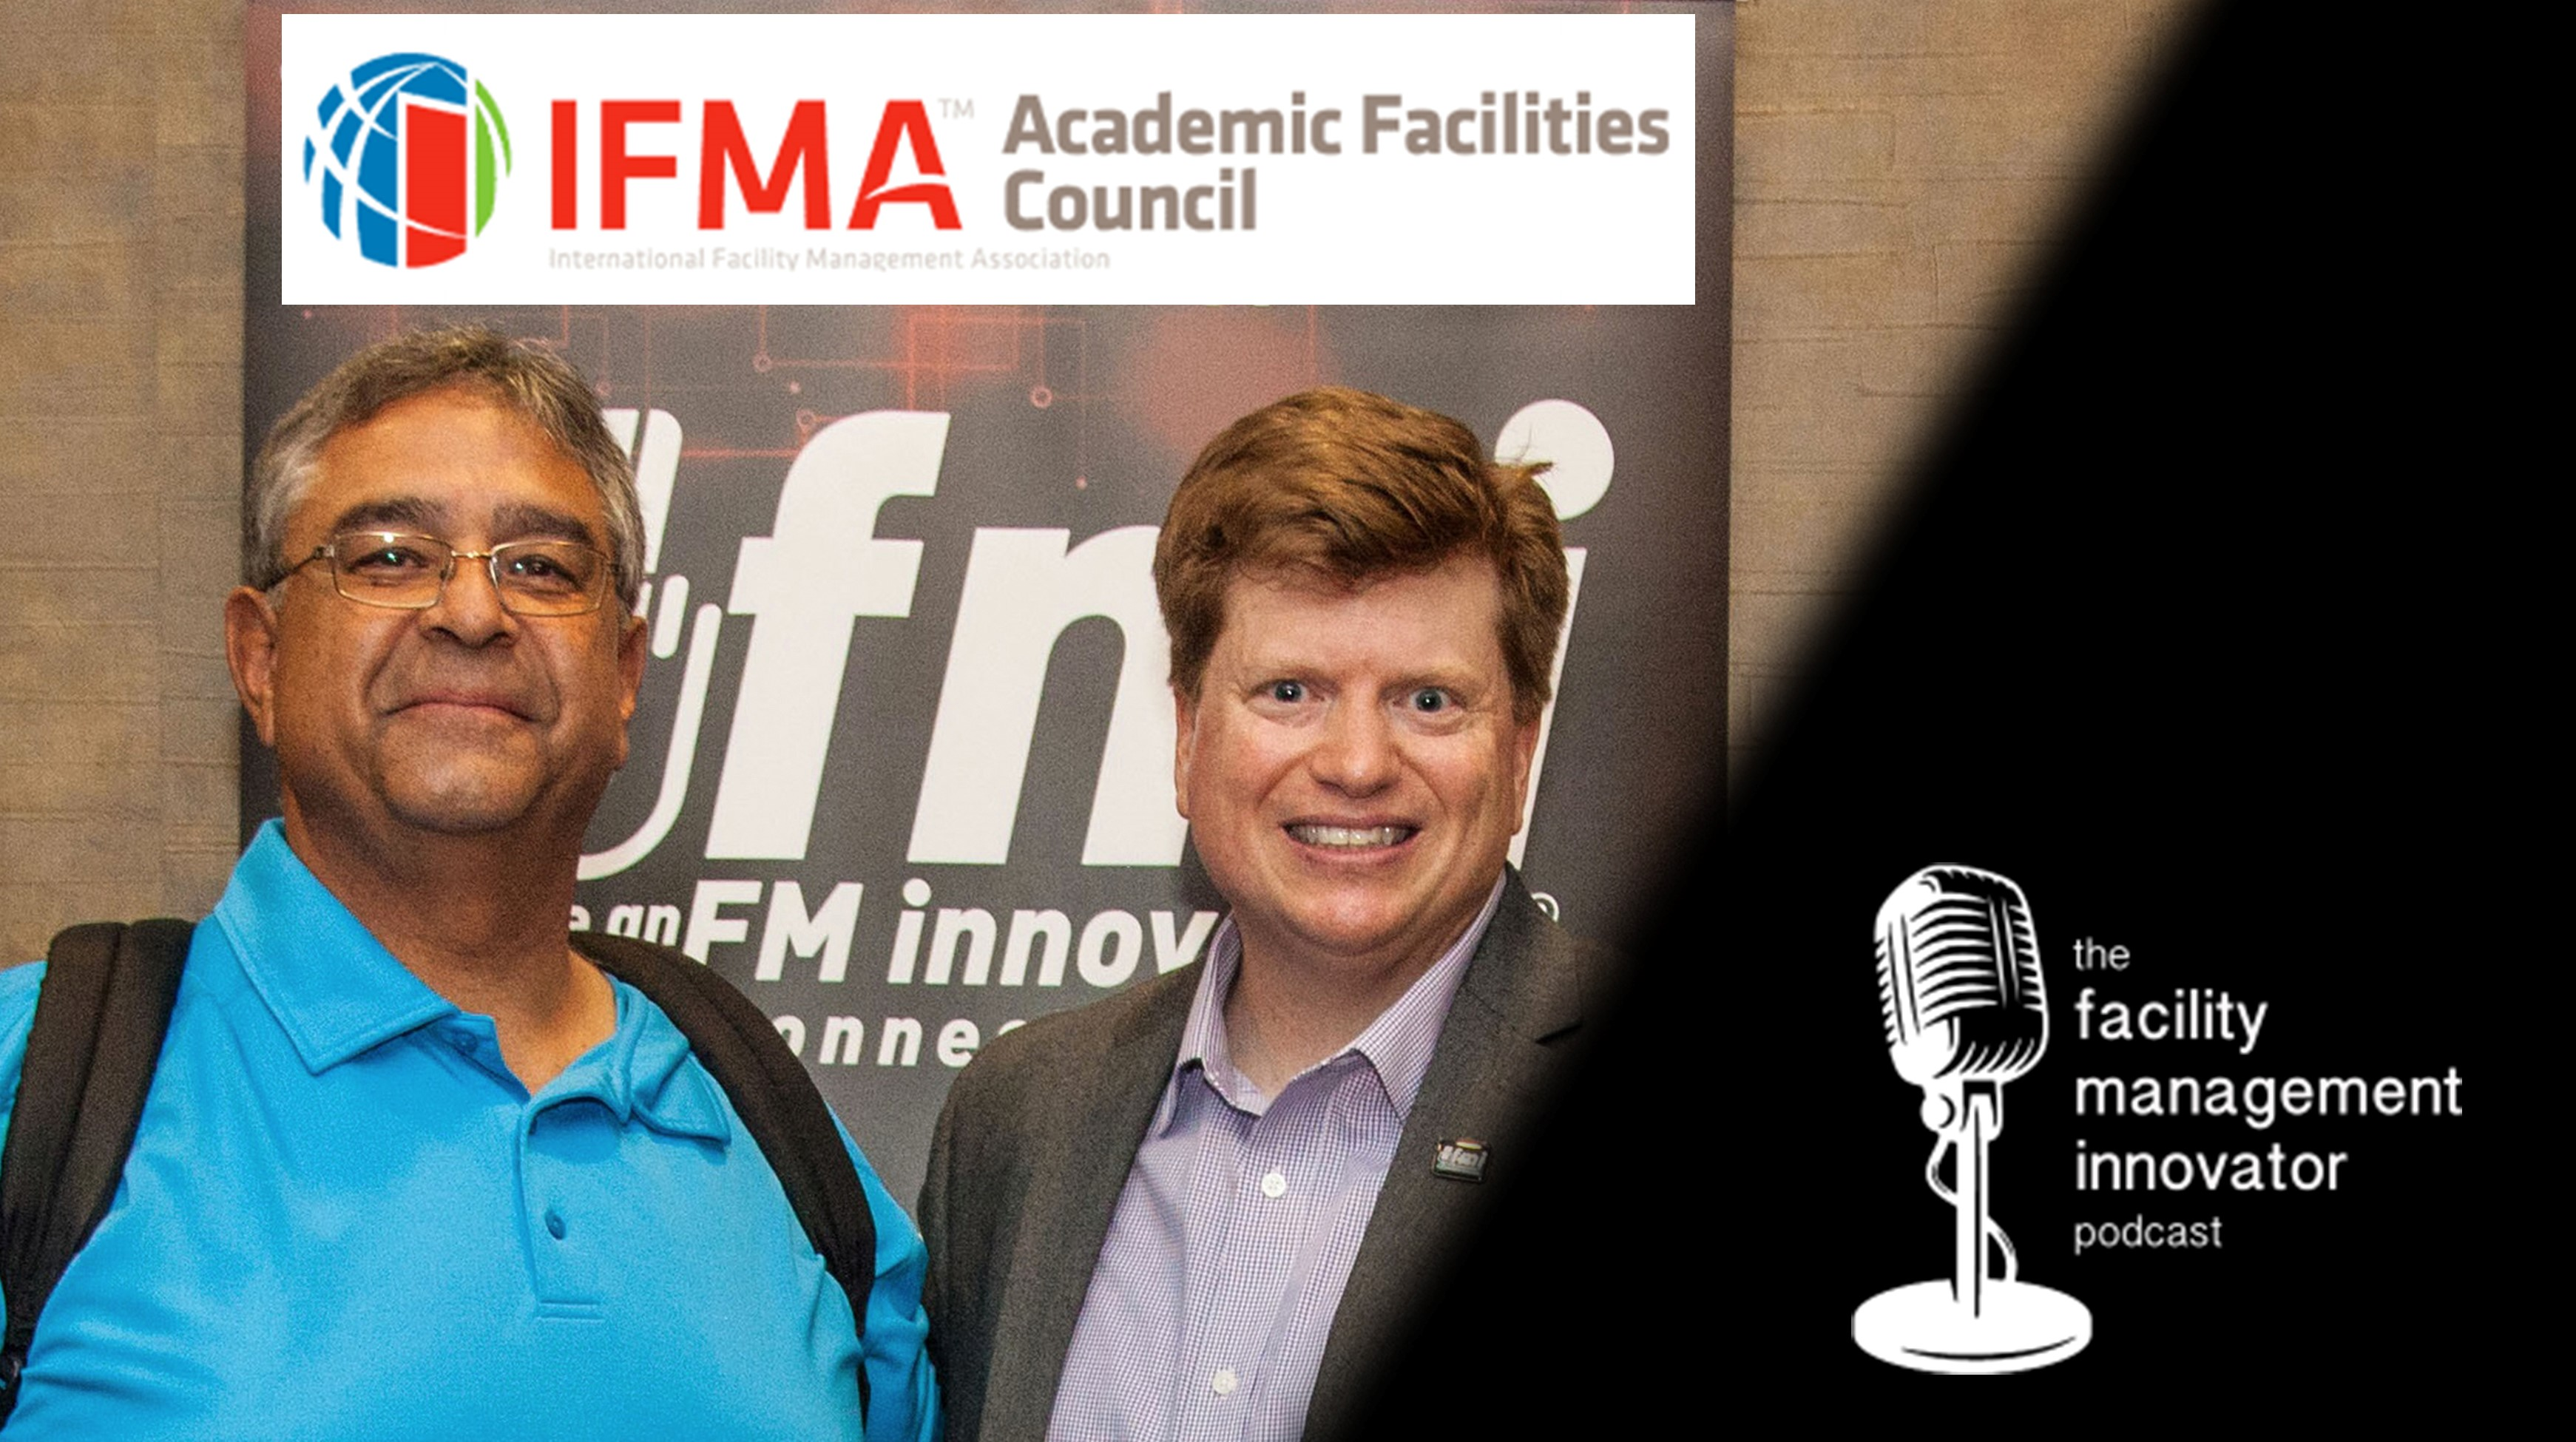 Ep. 74: Academic Facilities Management & IFMA Connections | James P. Gonsalves, CFM, SFP